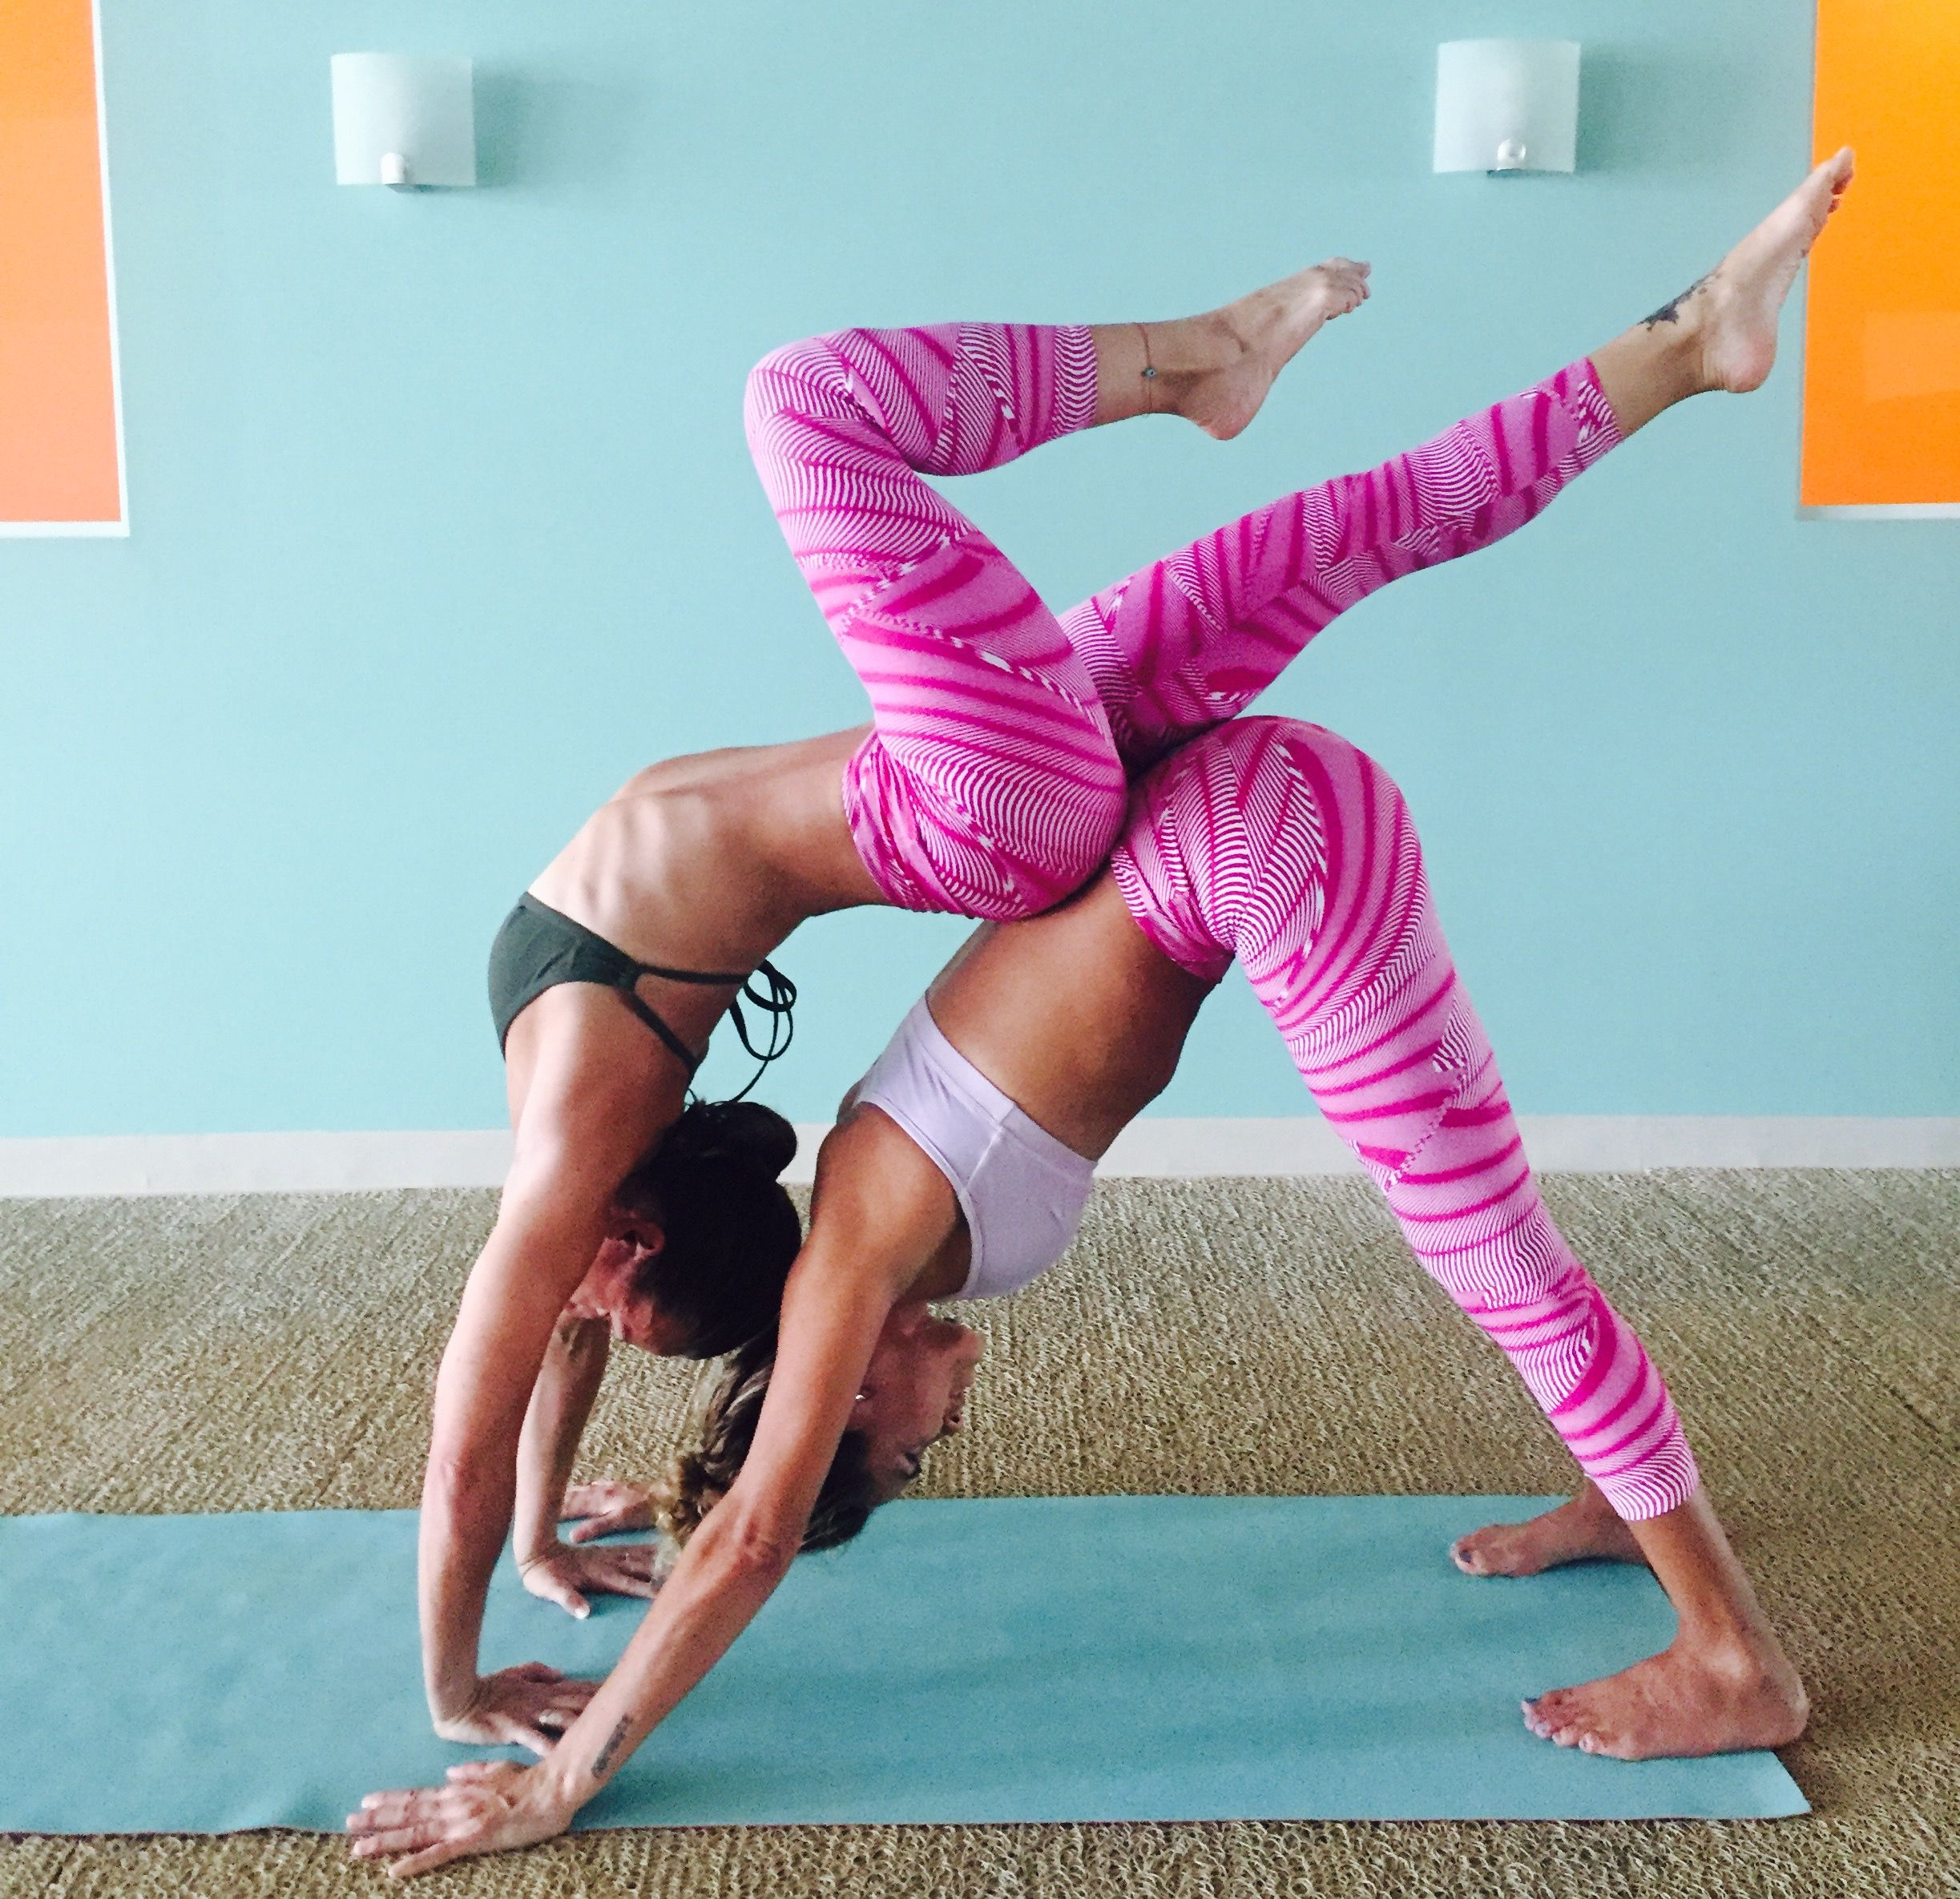 Micaela Legging Yoga Clothes Active Wear How To Wear